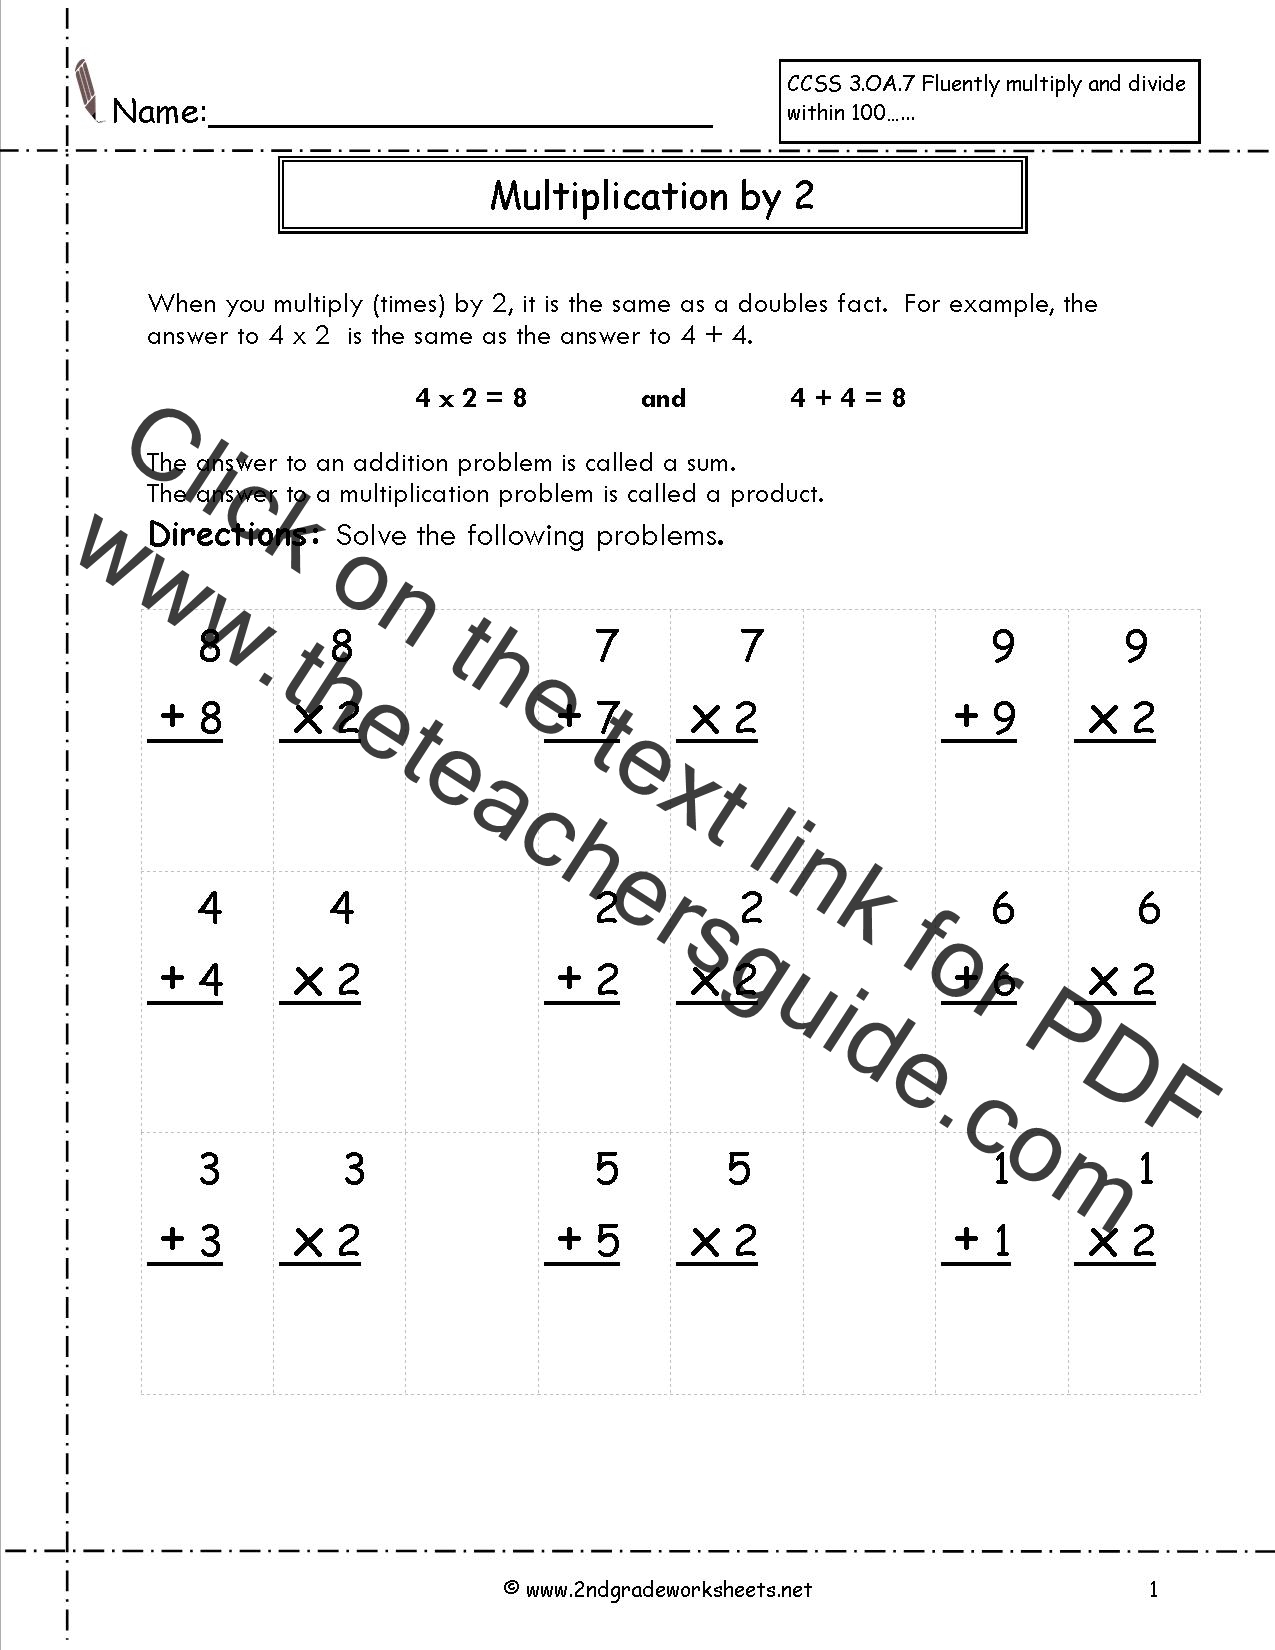 math worksheet : multiplication worksheets and printouts : Double Math Facts Worksheets